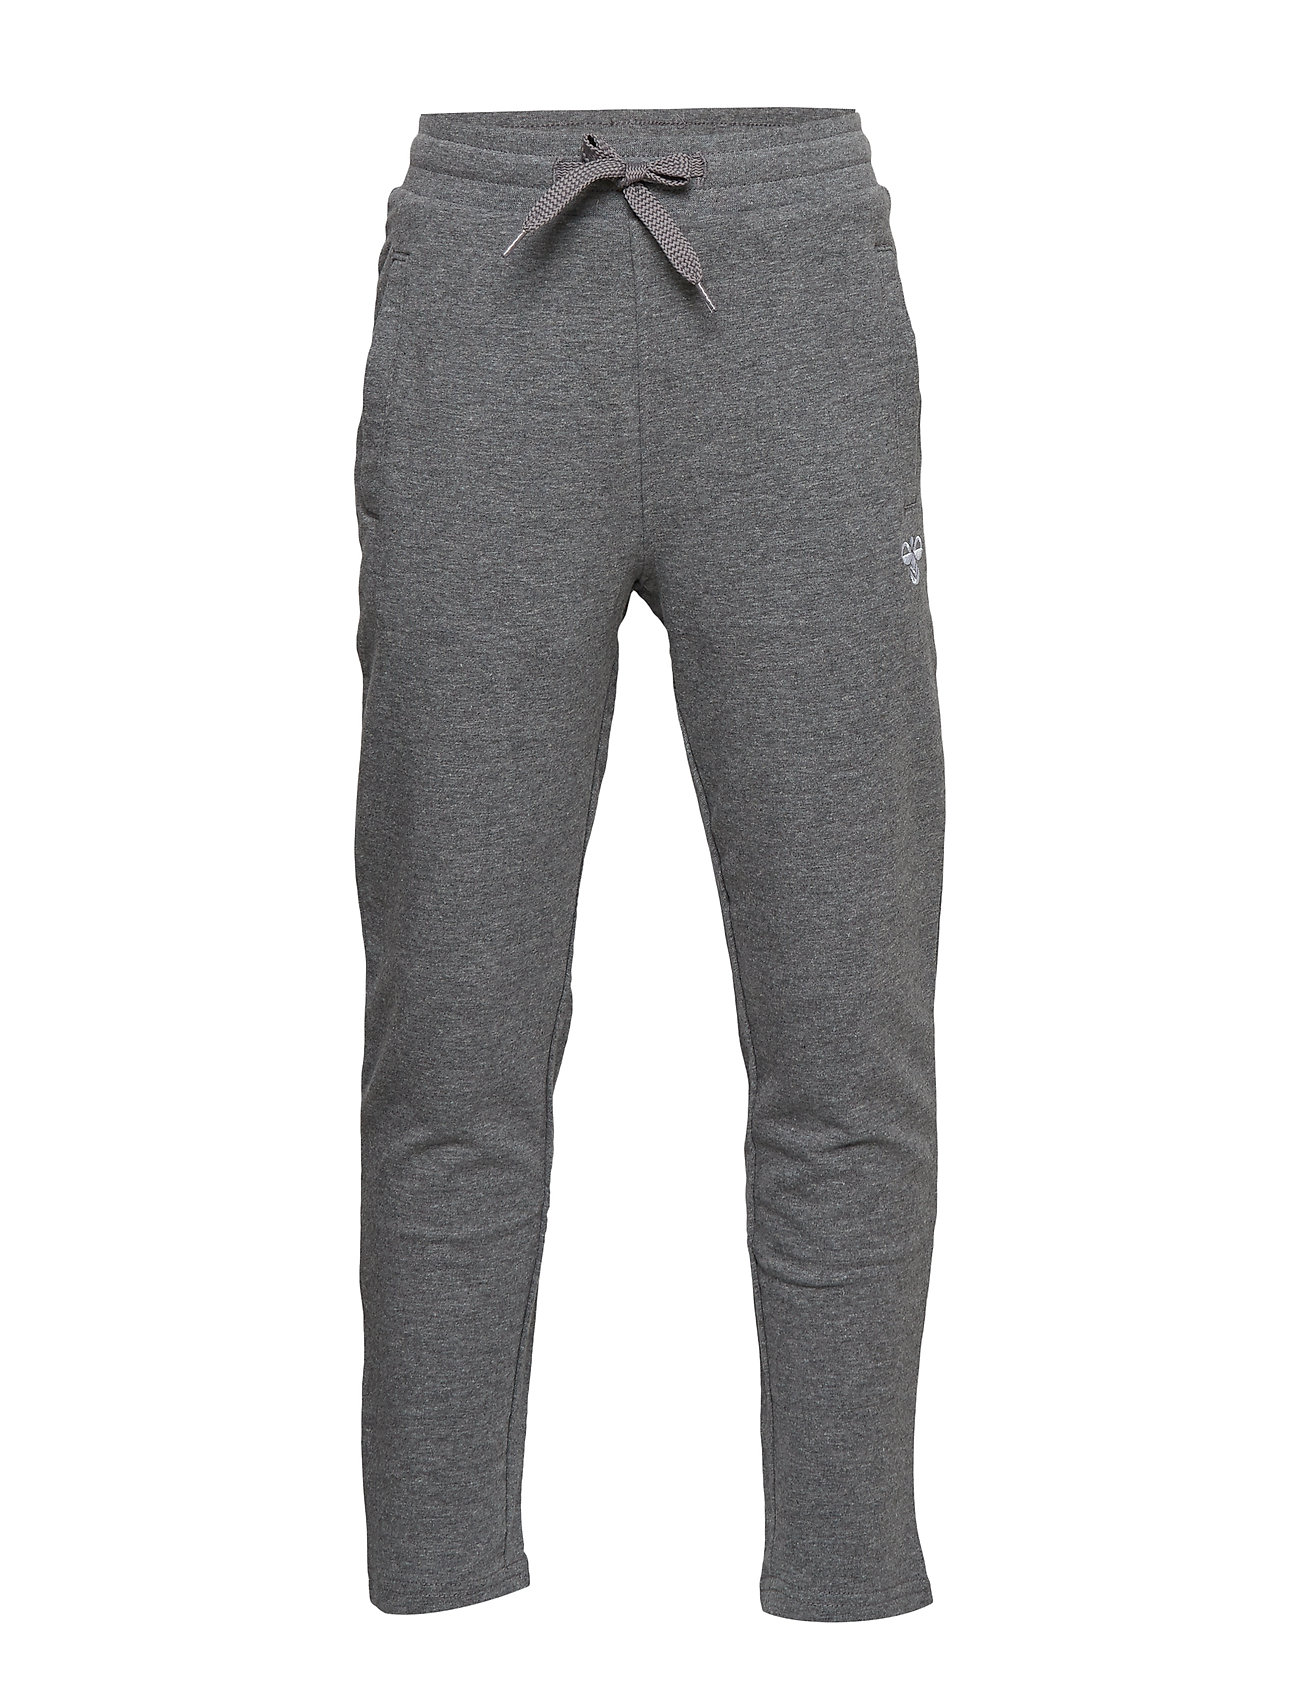 Hummel hmlUNO PANTS - MEDIUM MELANGE